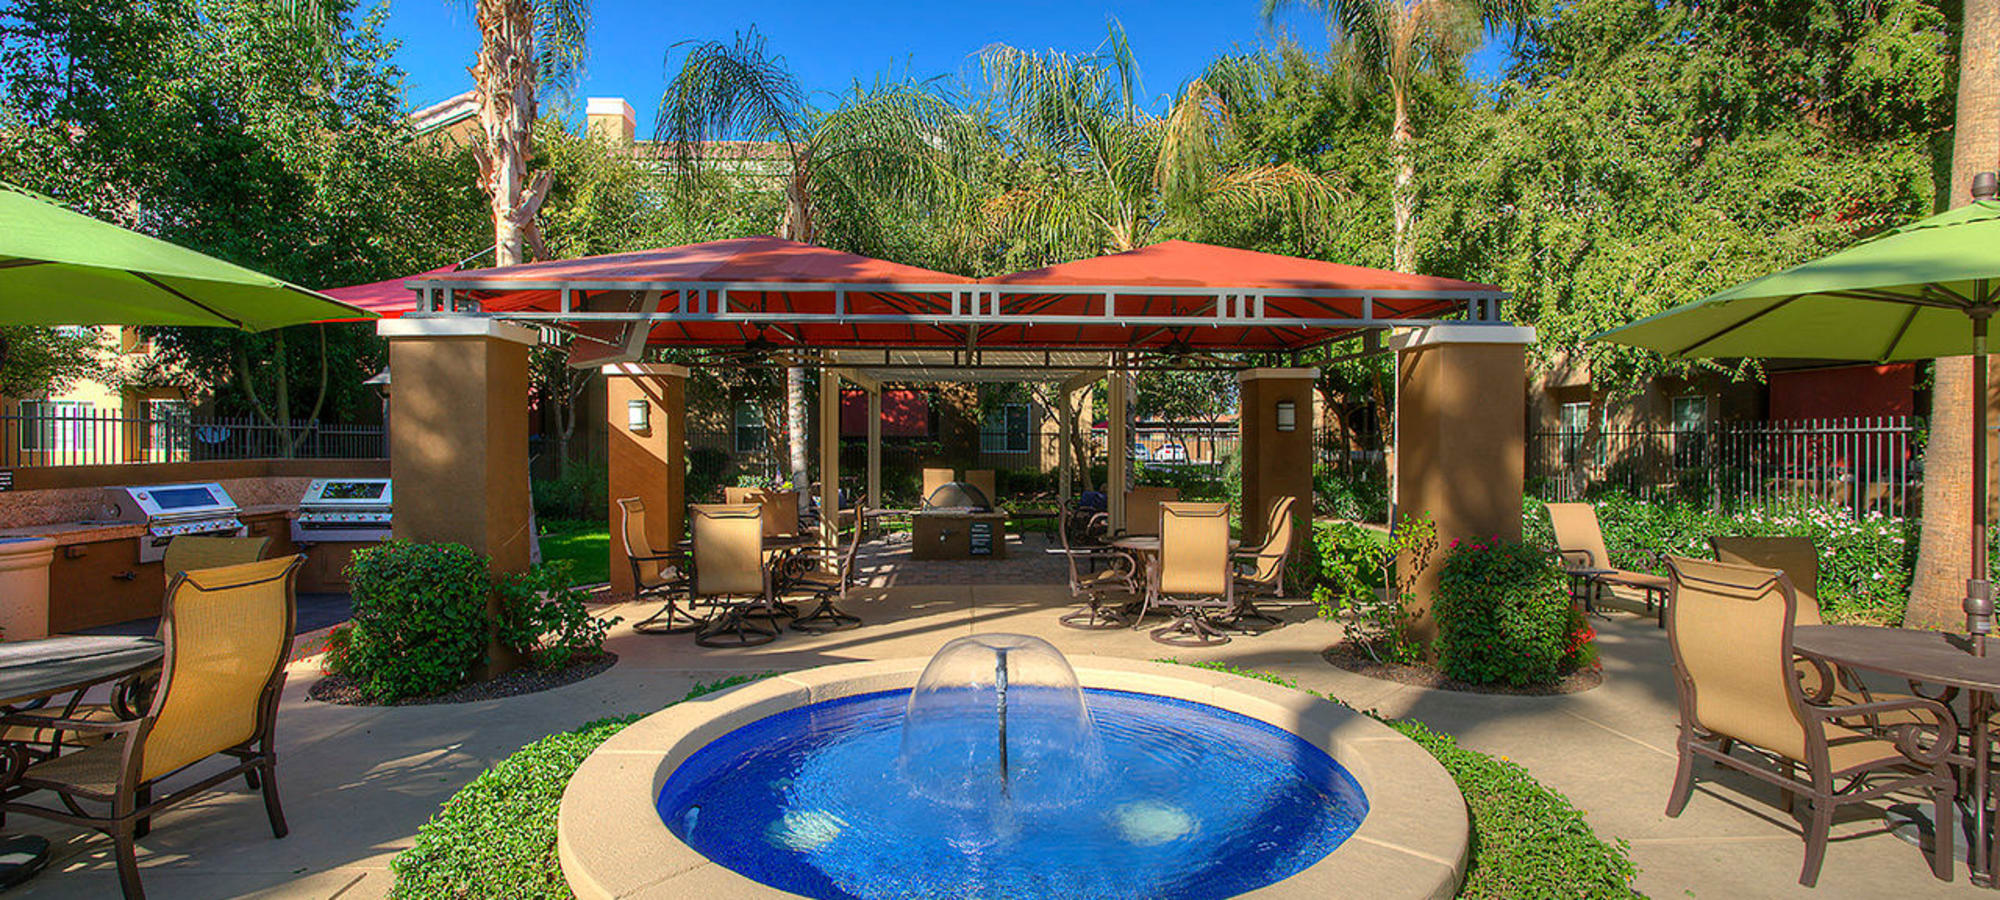 Outdoor dining tables seated around a water fountain at Park on Bell in Phoenix, Arizona